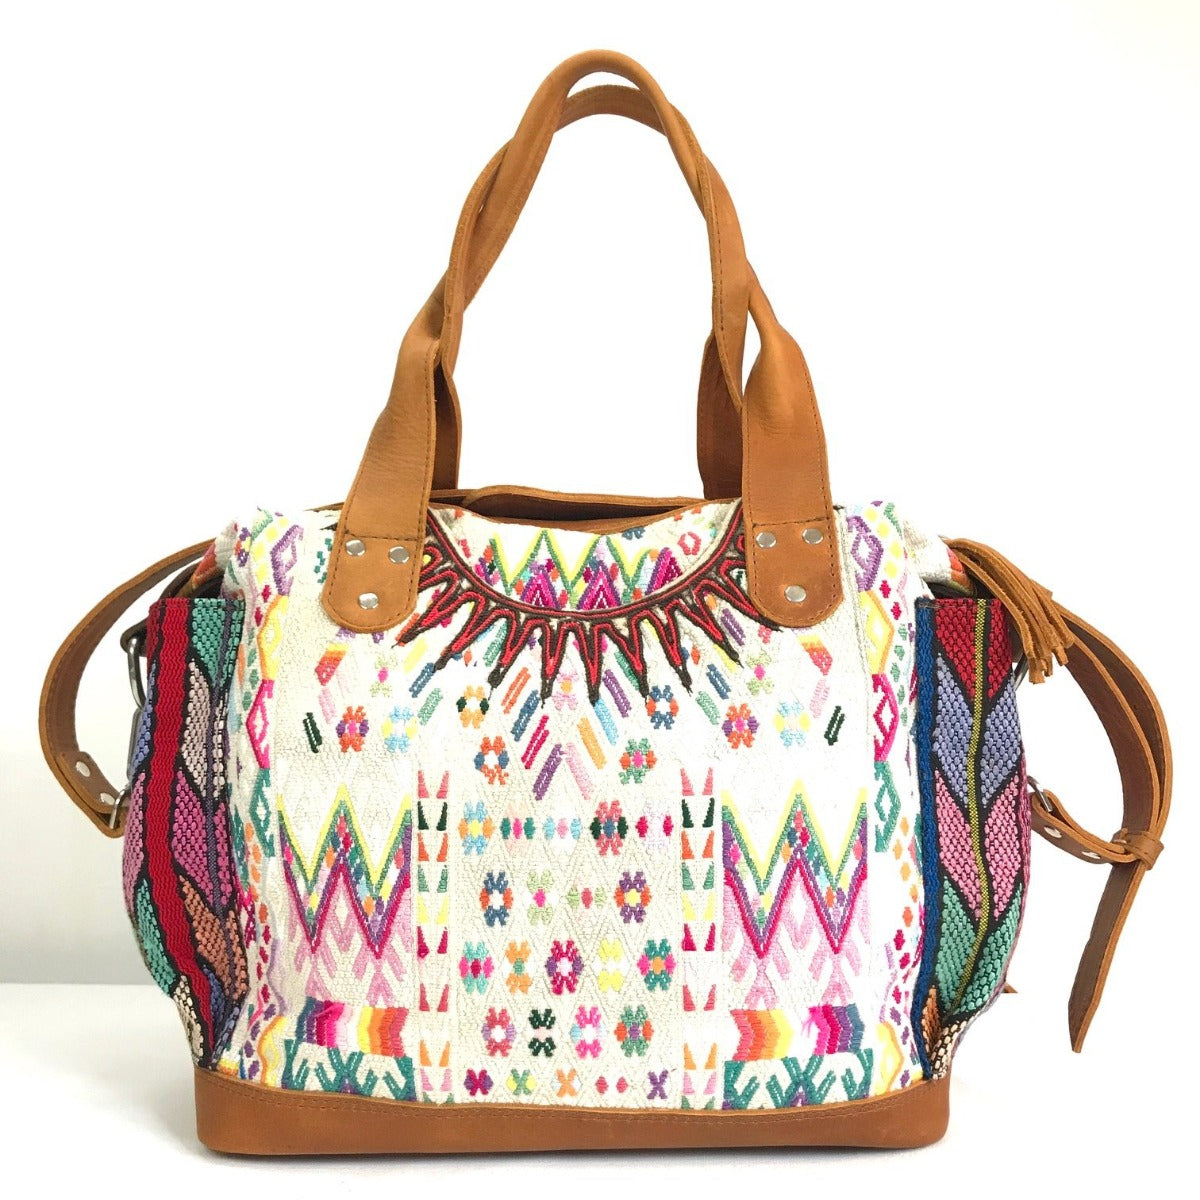 Tenango CDB - One-of-a-kind Convertible Day Bag